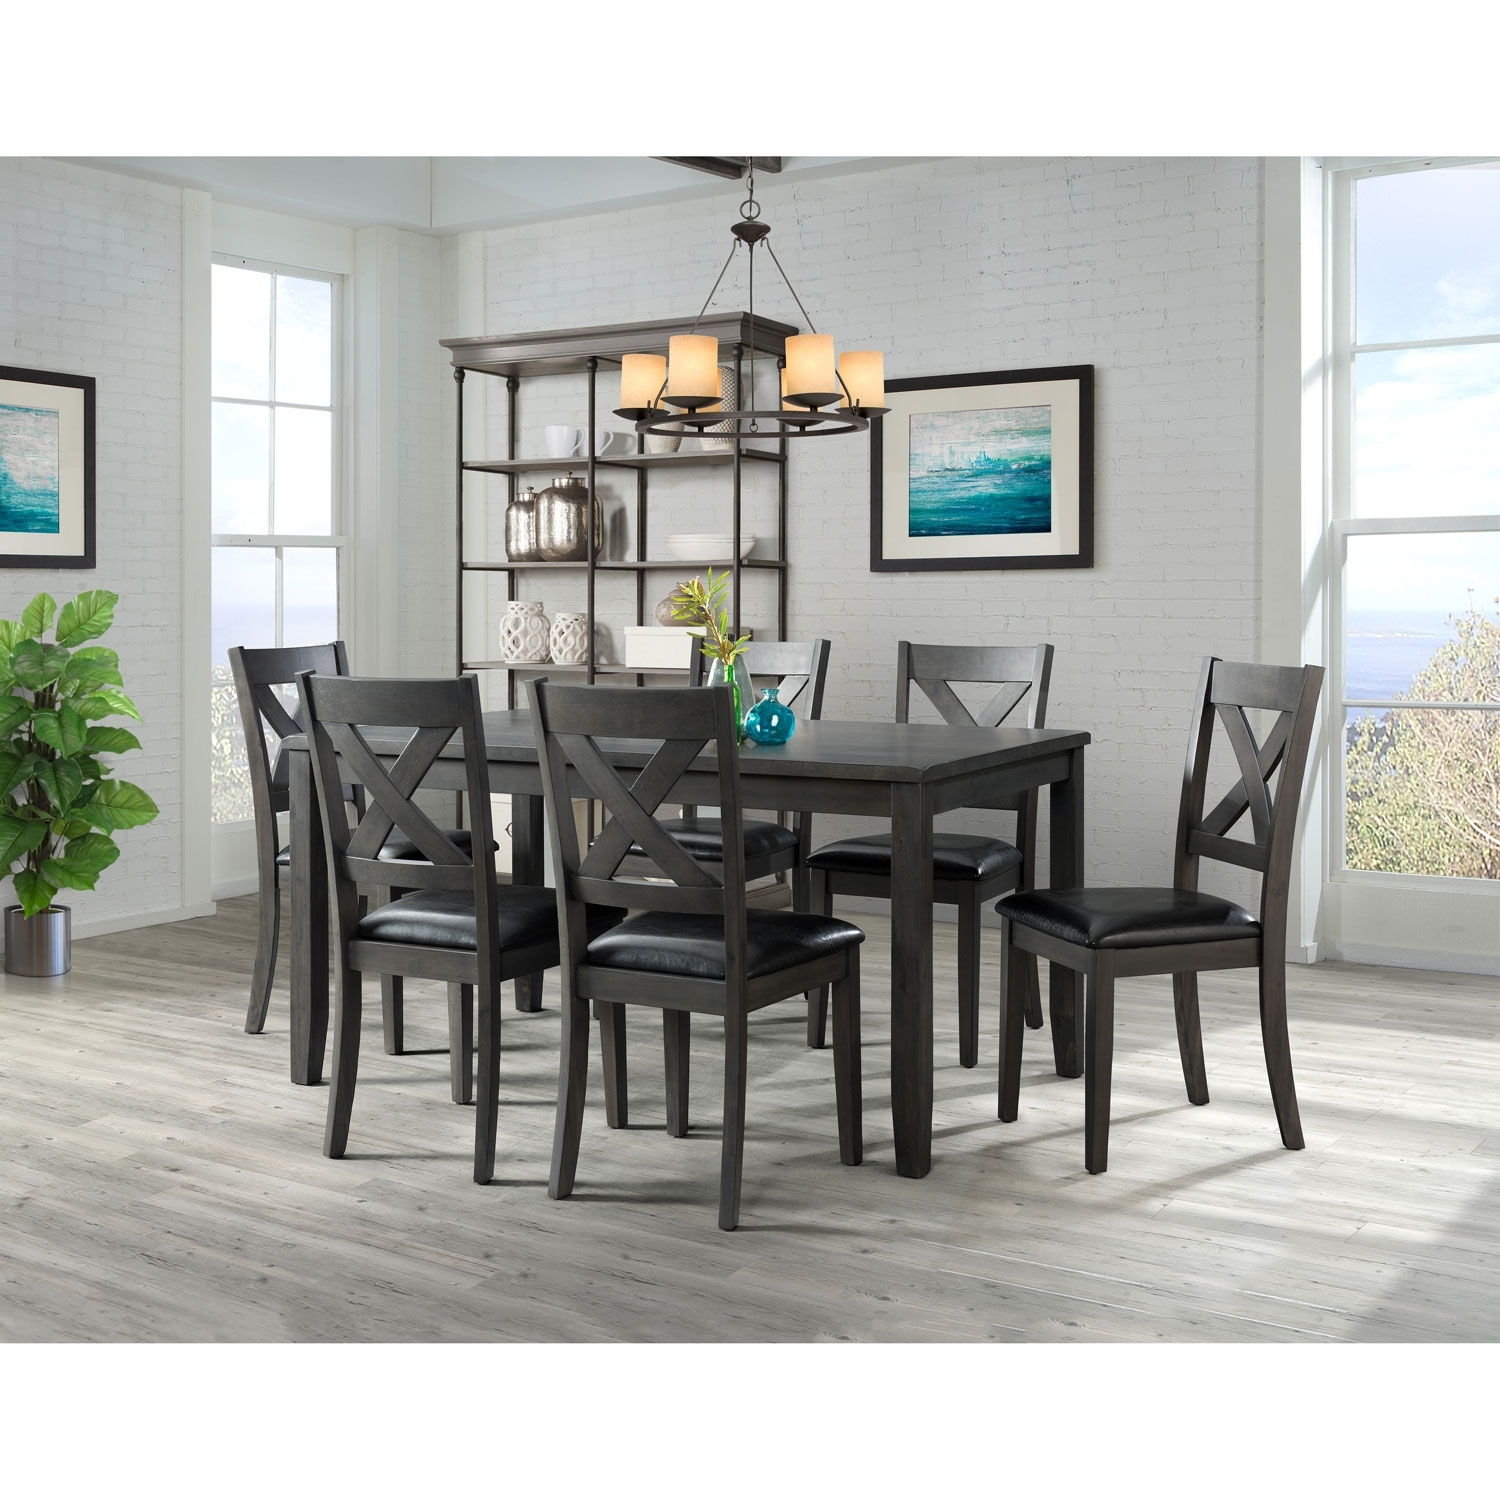 Inspiration about 2019 Alexa Black Side Chairs Within Alexa Transitional 7 Piece Dining Set – Grey : Dining Sets – Best (#19 of 20)